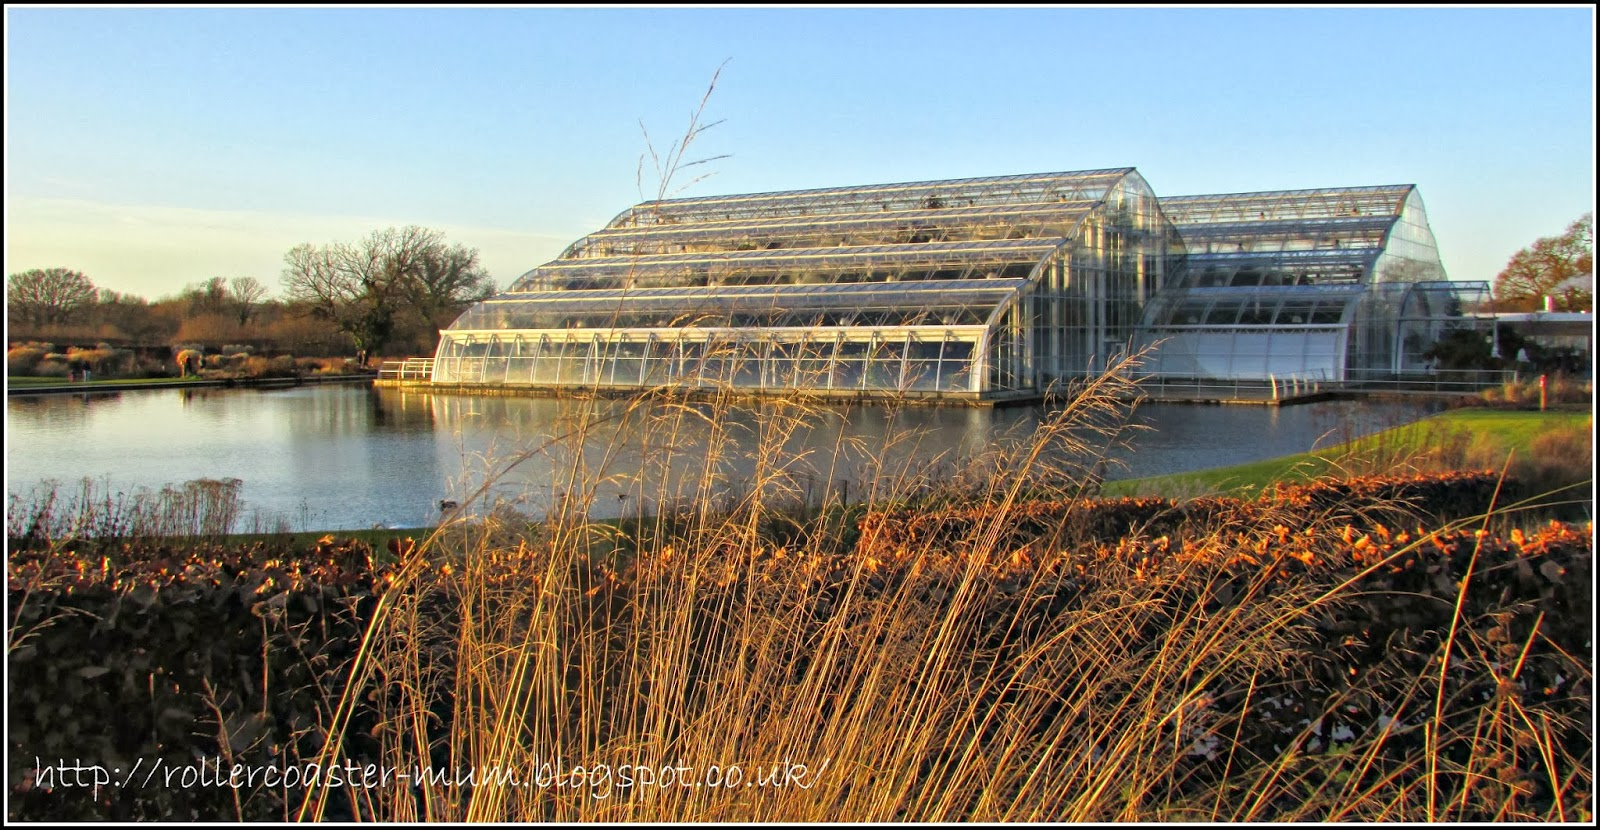 view of the Glasshouse in winter, RHS Wisley